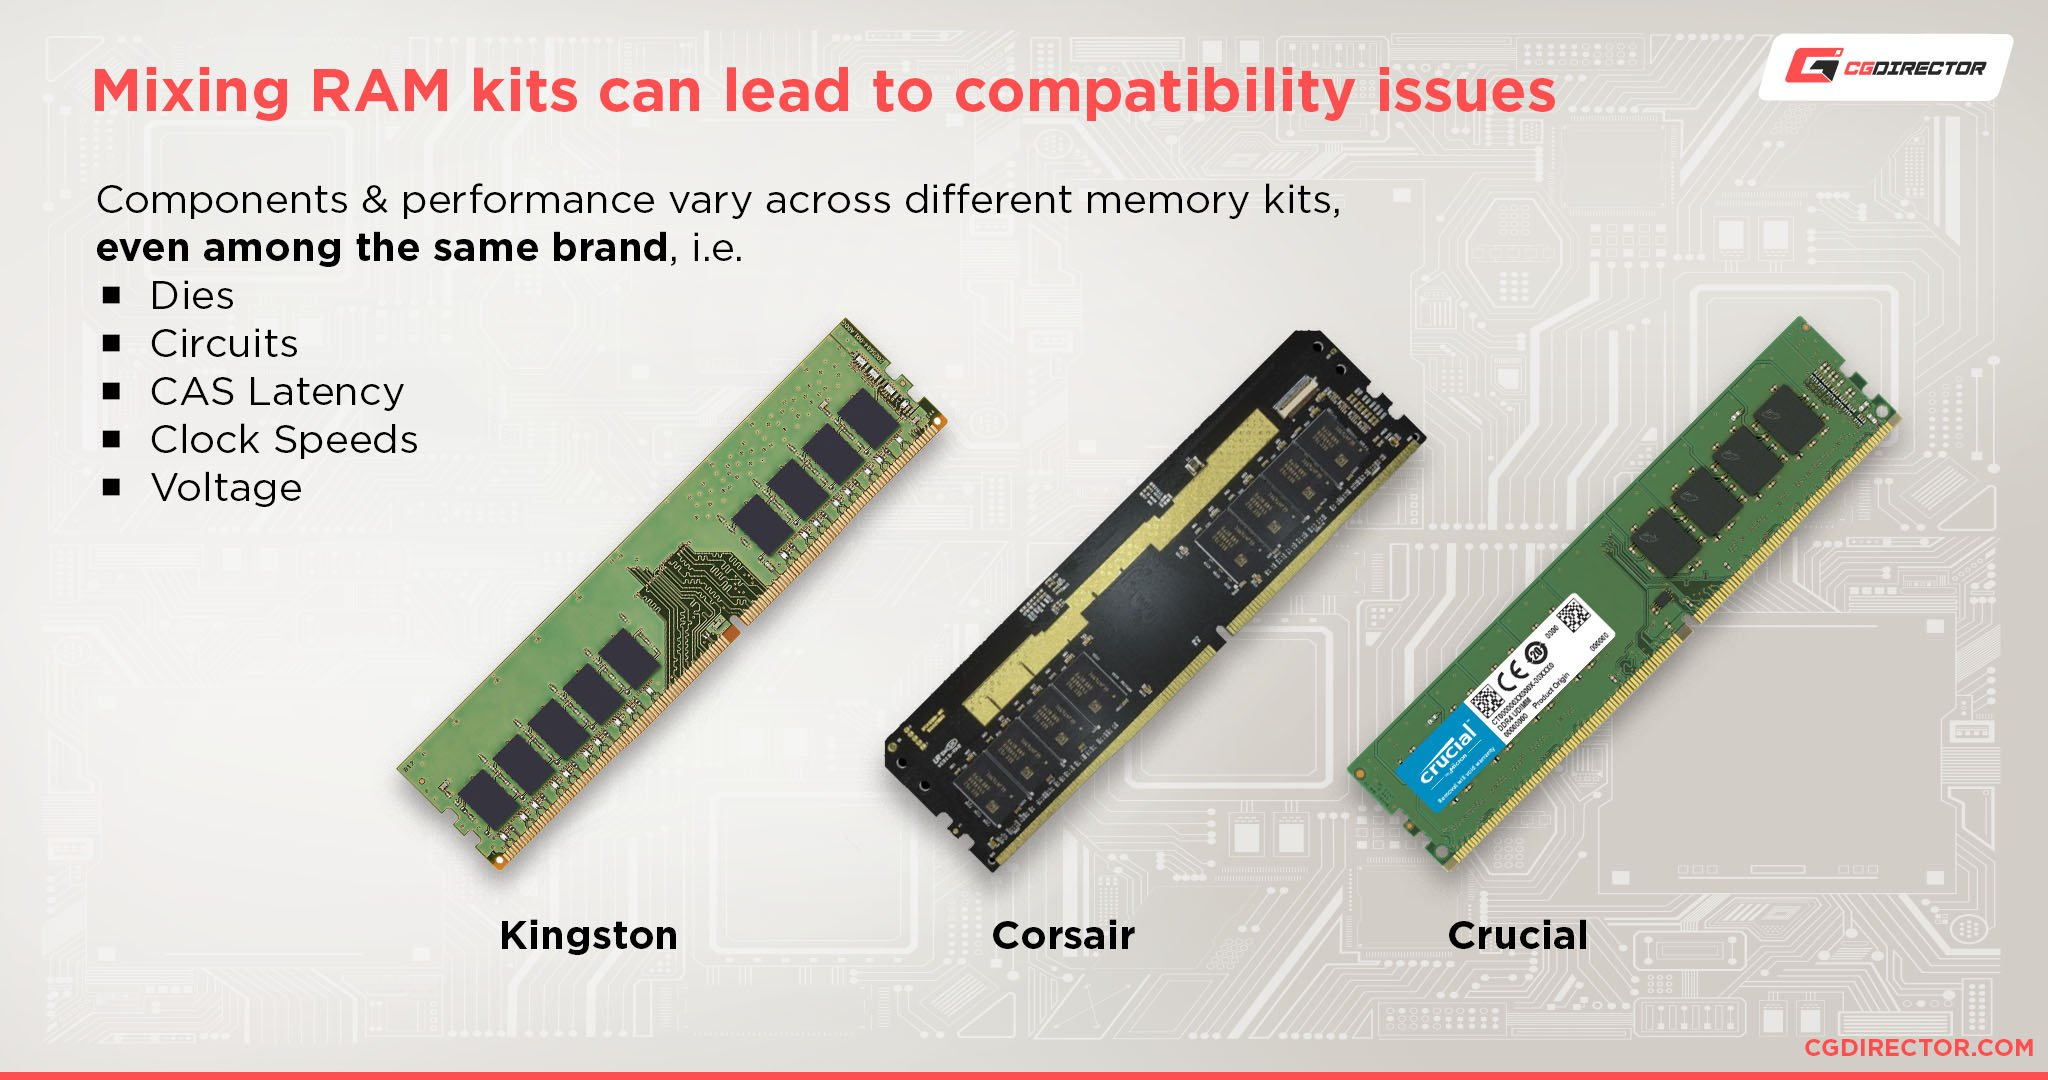 Mixing RAM kits can lead to compatibility issues